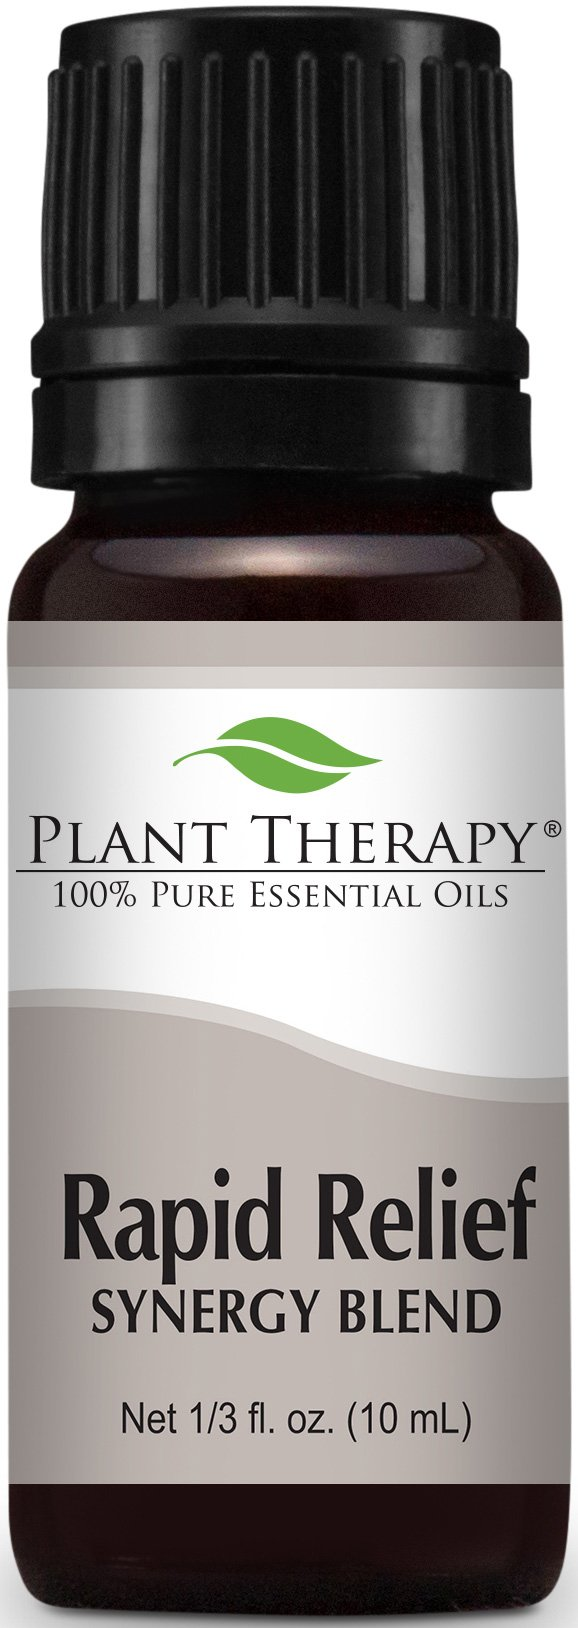 Plant Therapy Rapid Relief Synergy (Formerly Known As Pain-Aid) Essential Oil Blend. 100% Pure, Undiluted, Therapeutic Grade Essential Oils. 10 ml (1/3 oz).